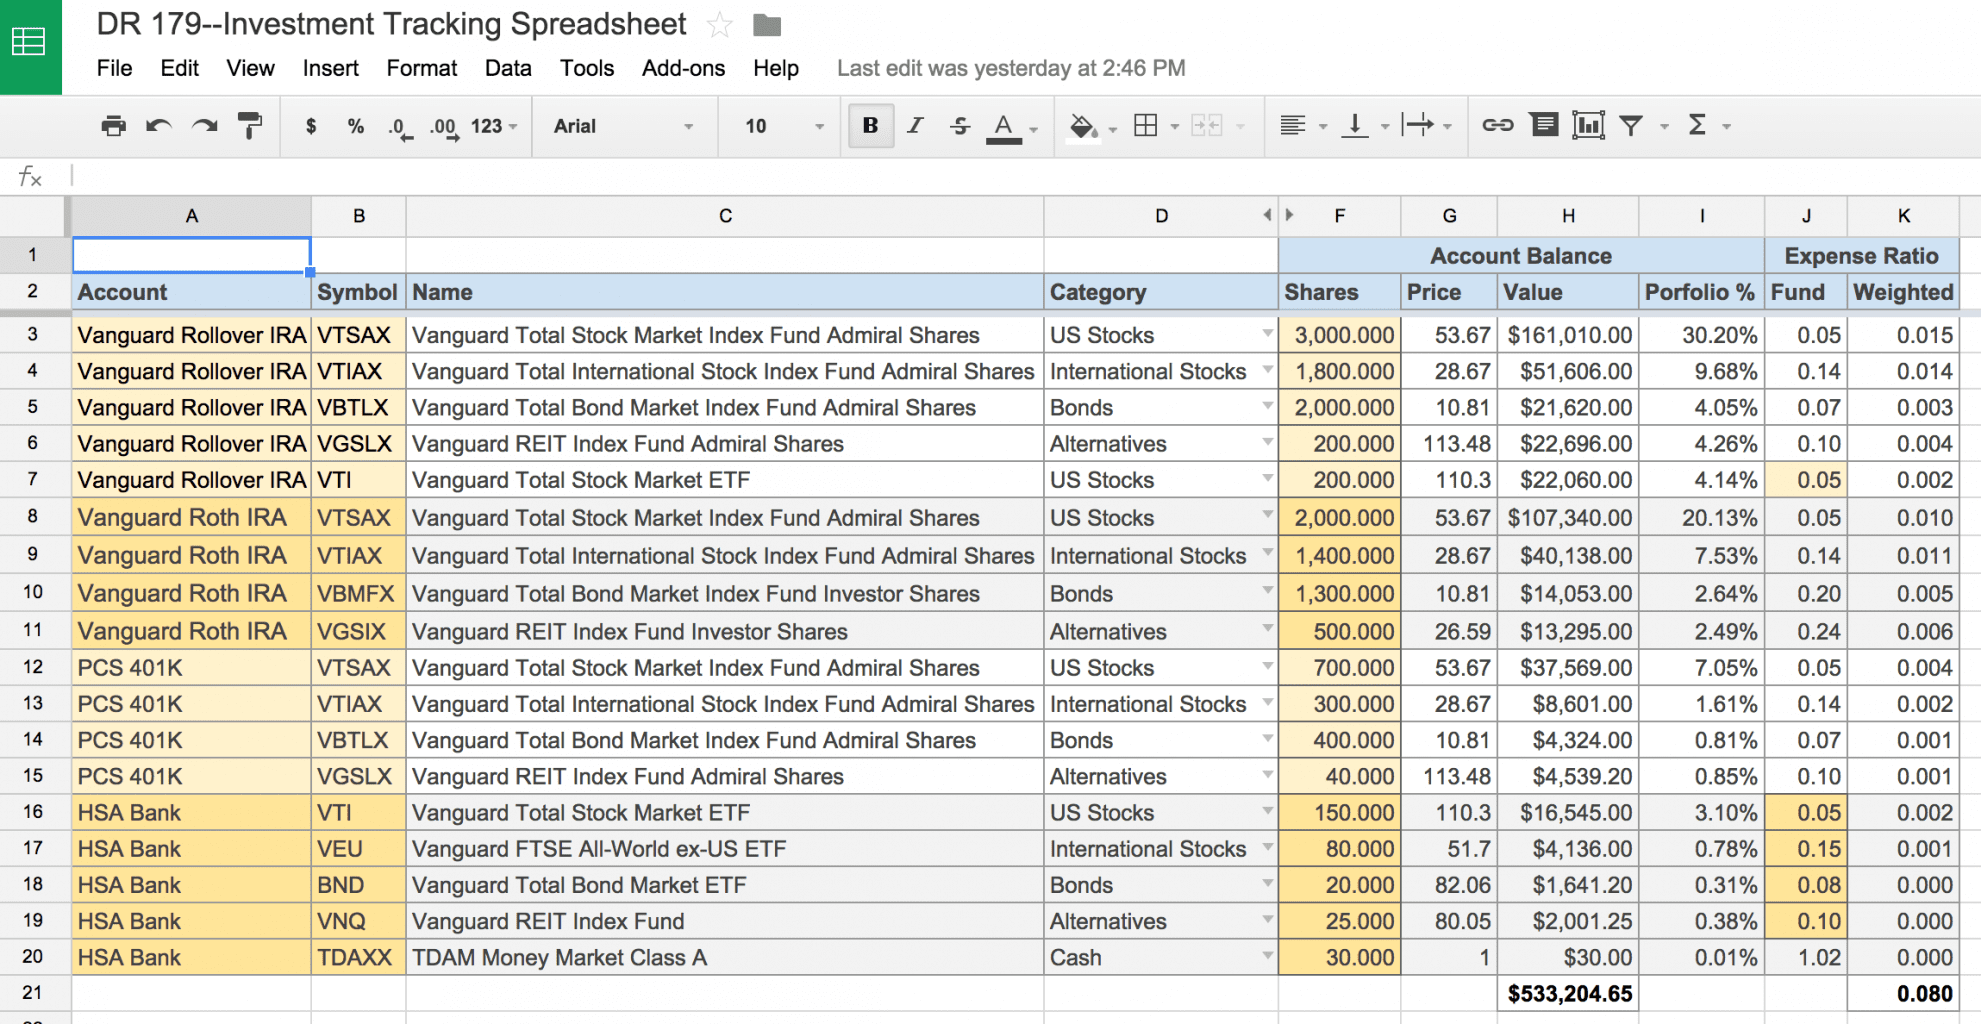 Free Excel Inventory Tracking Spreadsheet Inventory Tracking Spreadsheet Template Free Spreadsheet Templates for Busines Spreadsheet Templates for Busines Inventory And Sales Manager And Excel Template